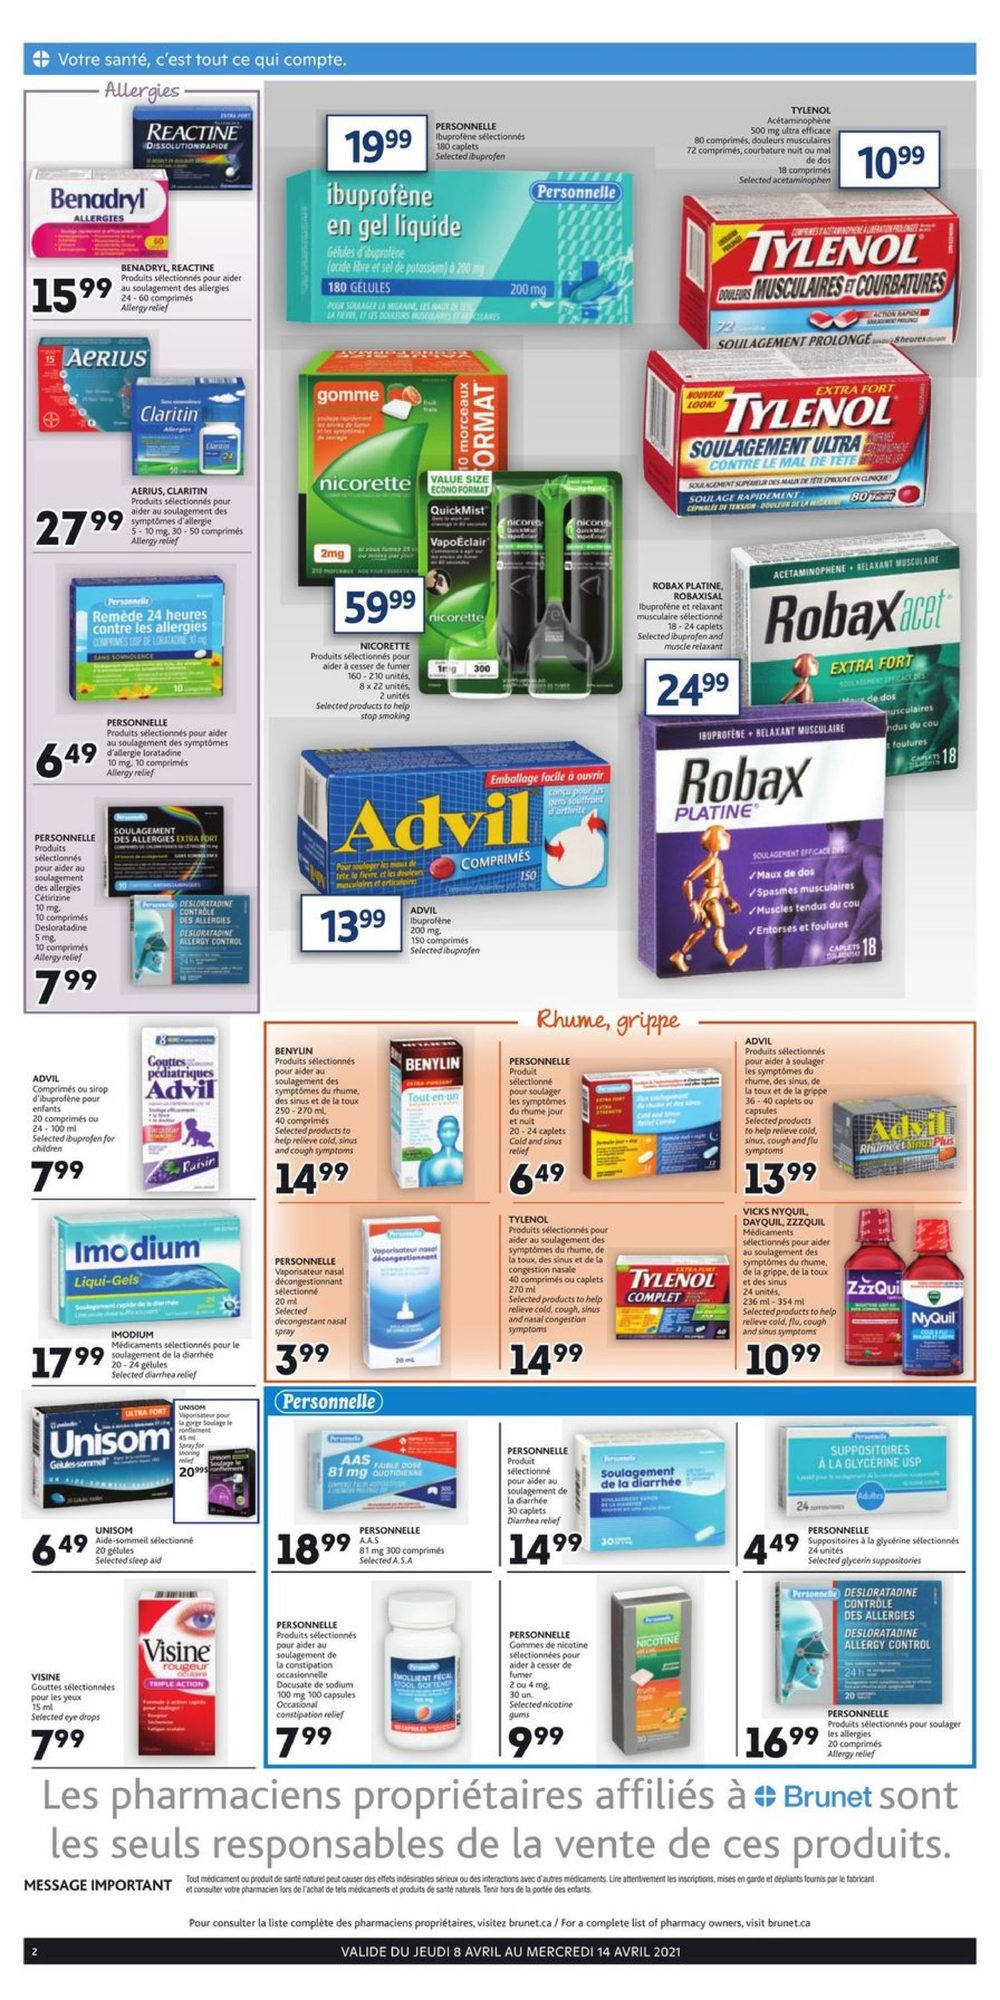 Brunet - Weekly Flyer Specials - Page 2